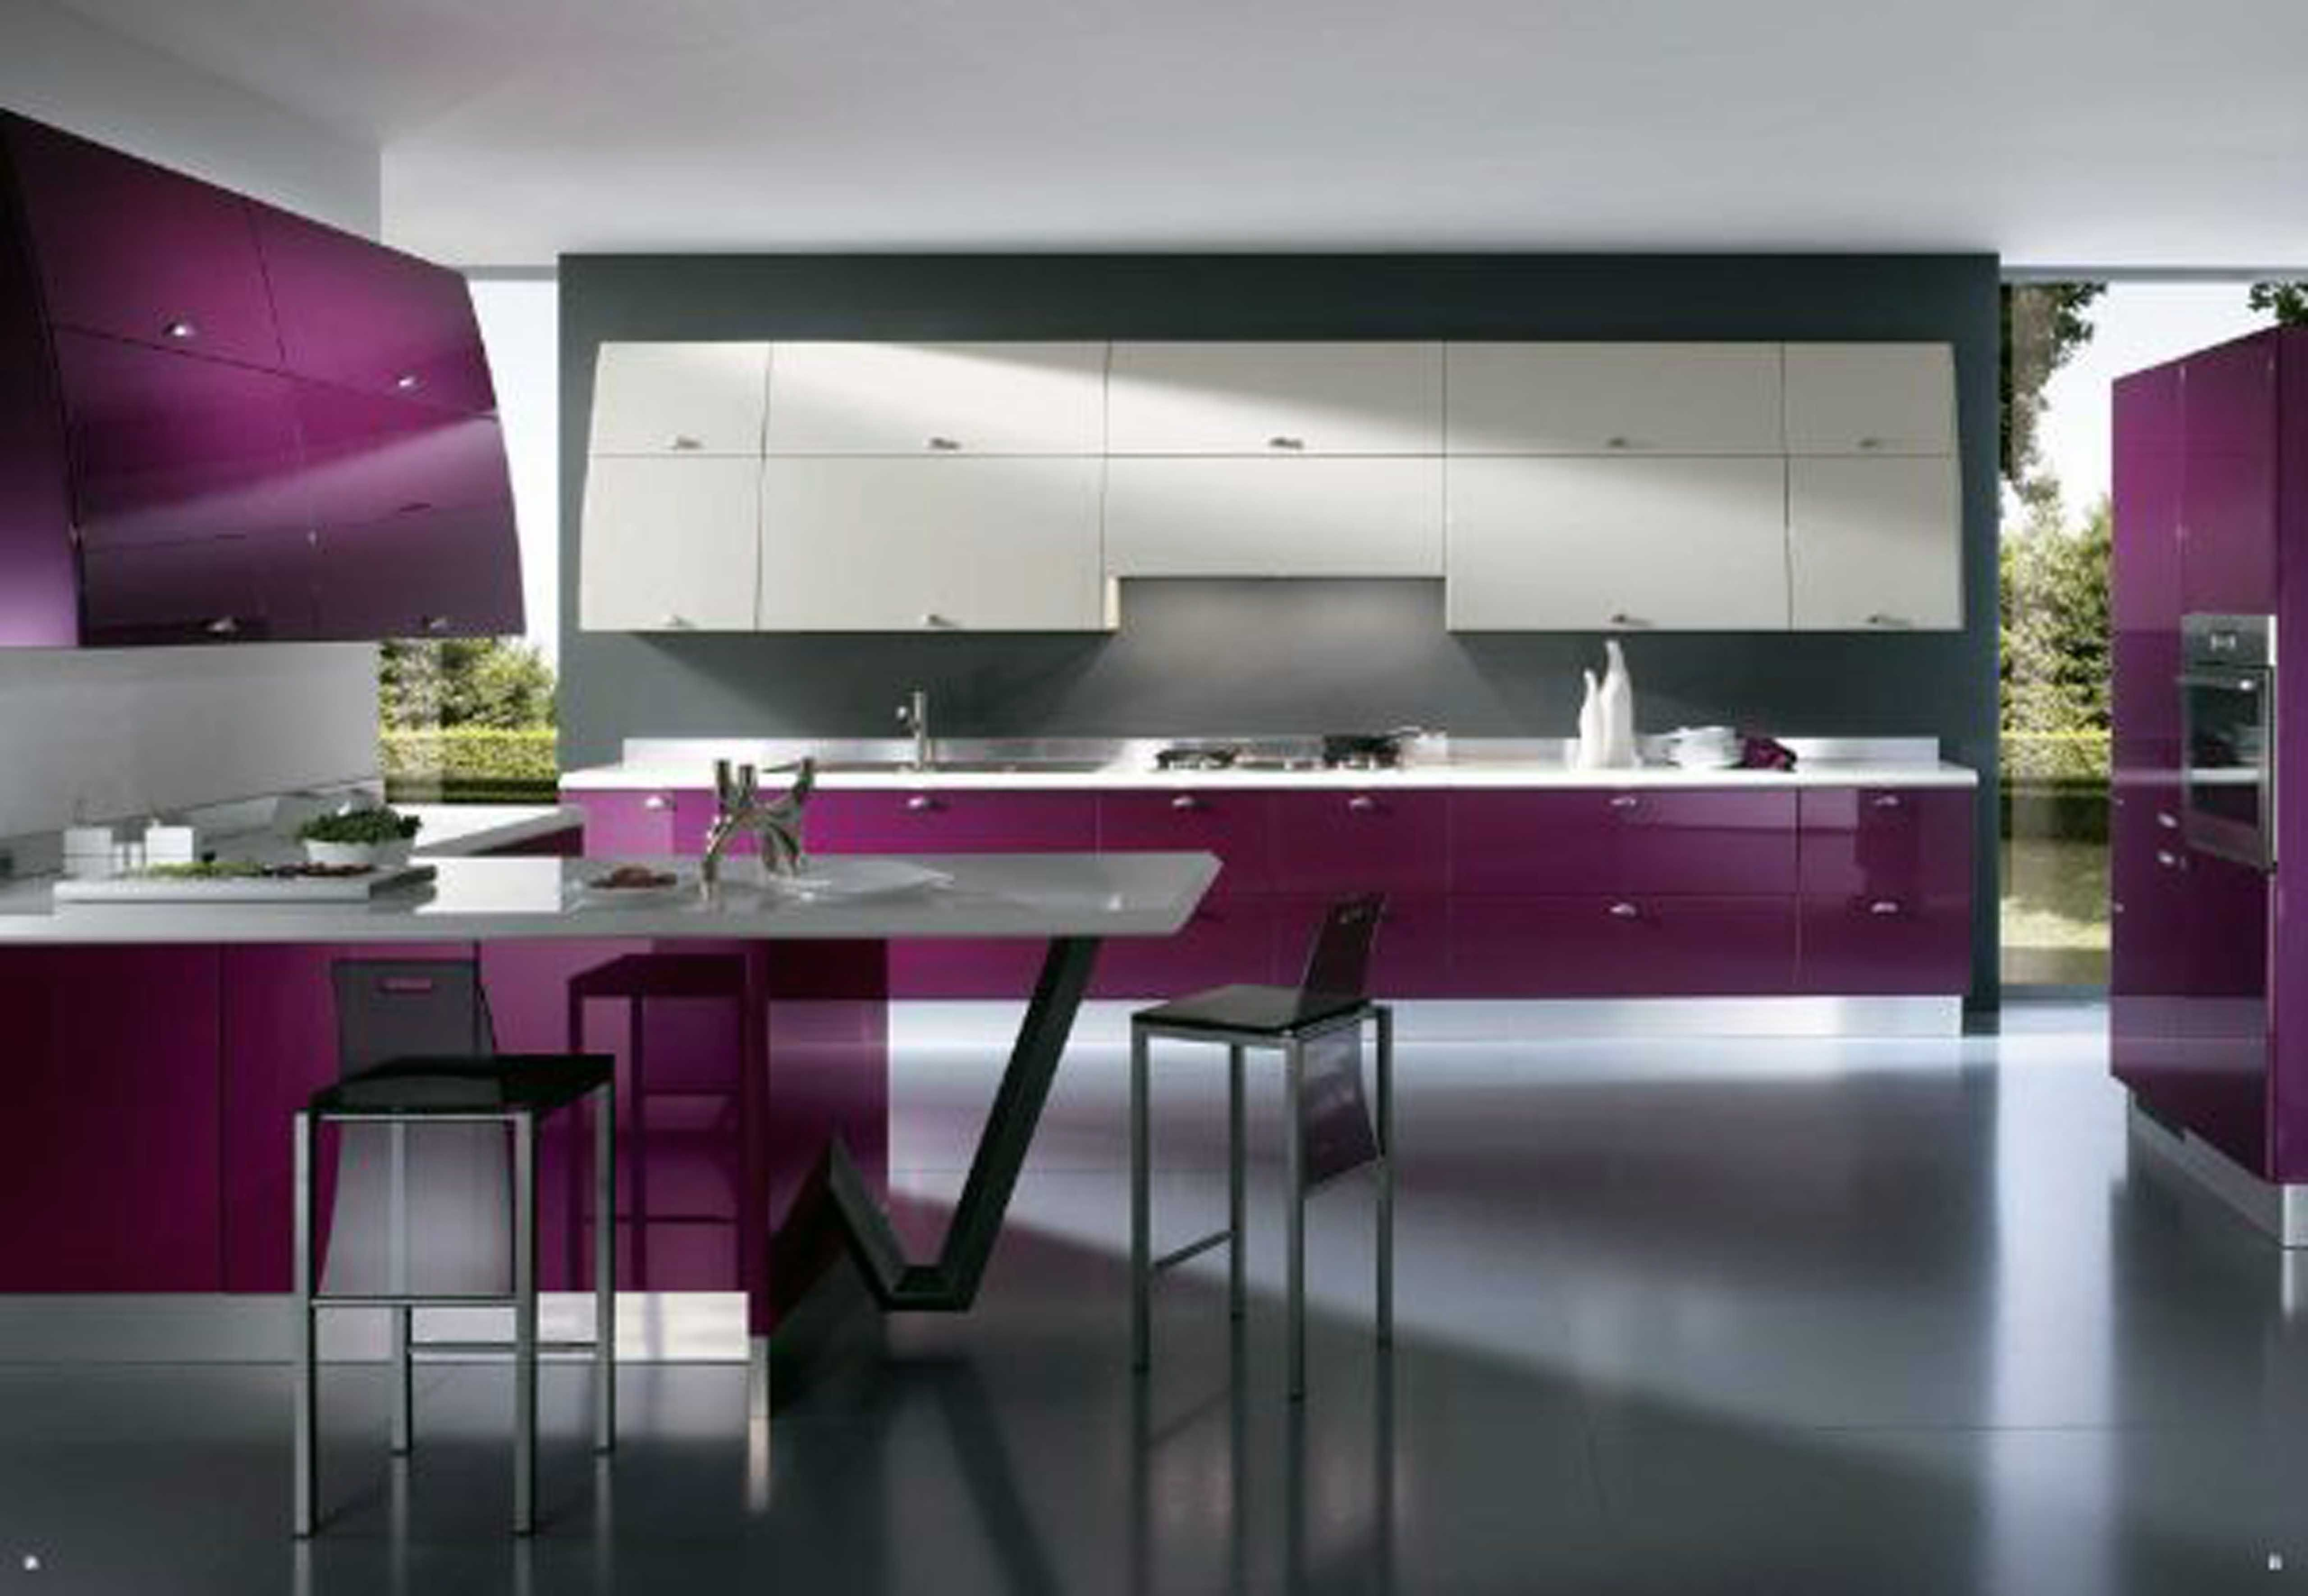 Innovative Gray Kitchen Ideas innovative kitchen ideas interesting the most innovative kitchen Modern Kitchen Offers Refined With Innovative Space Solutions With Grey Wall Violet Cabinet Oven Table Stove